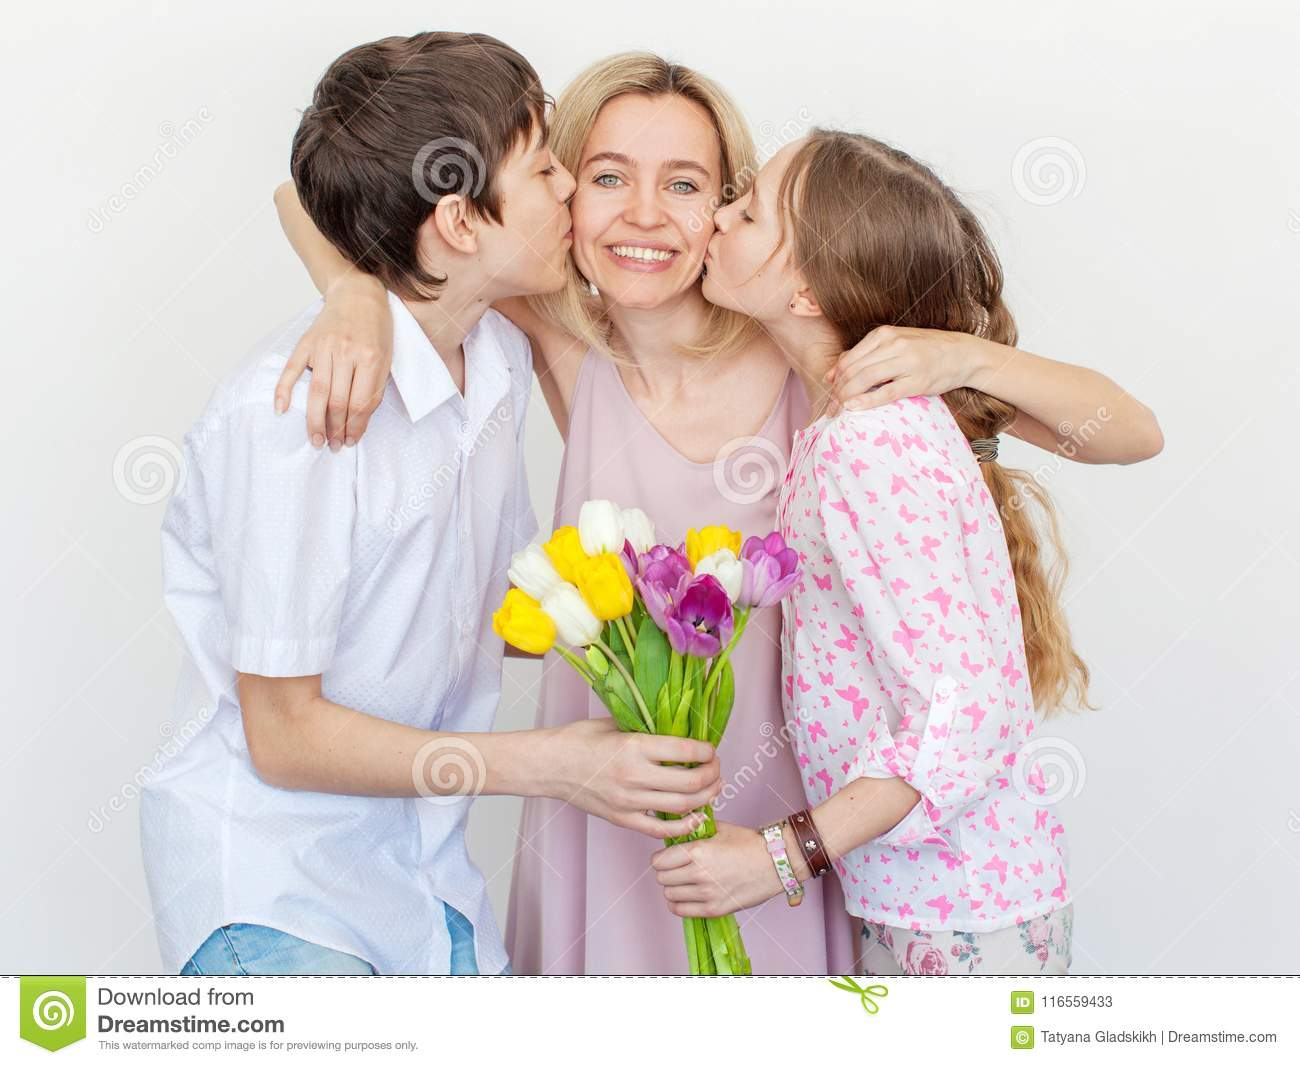 It's okay to give mother only flowers for your birthday 58